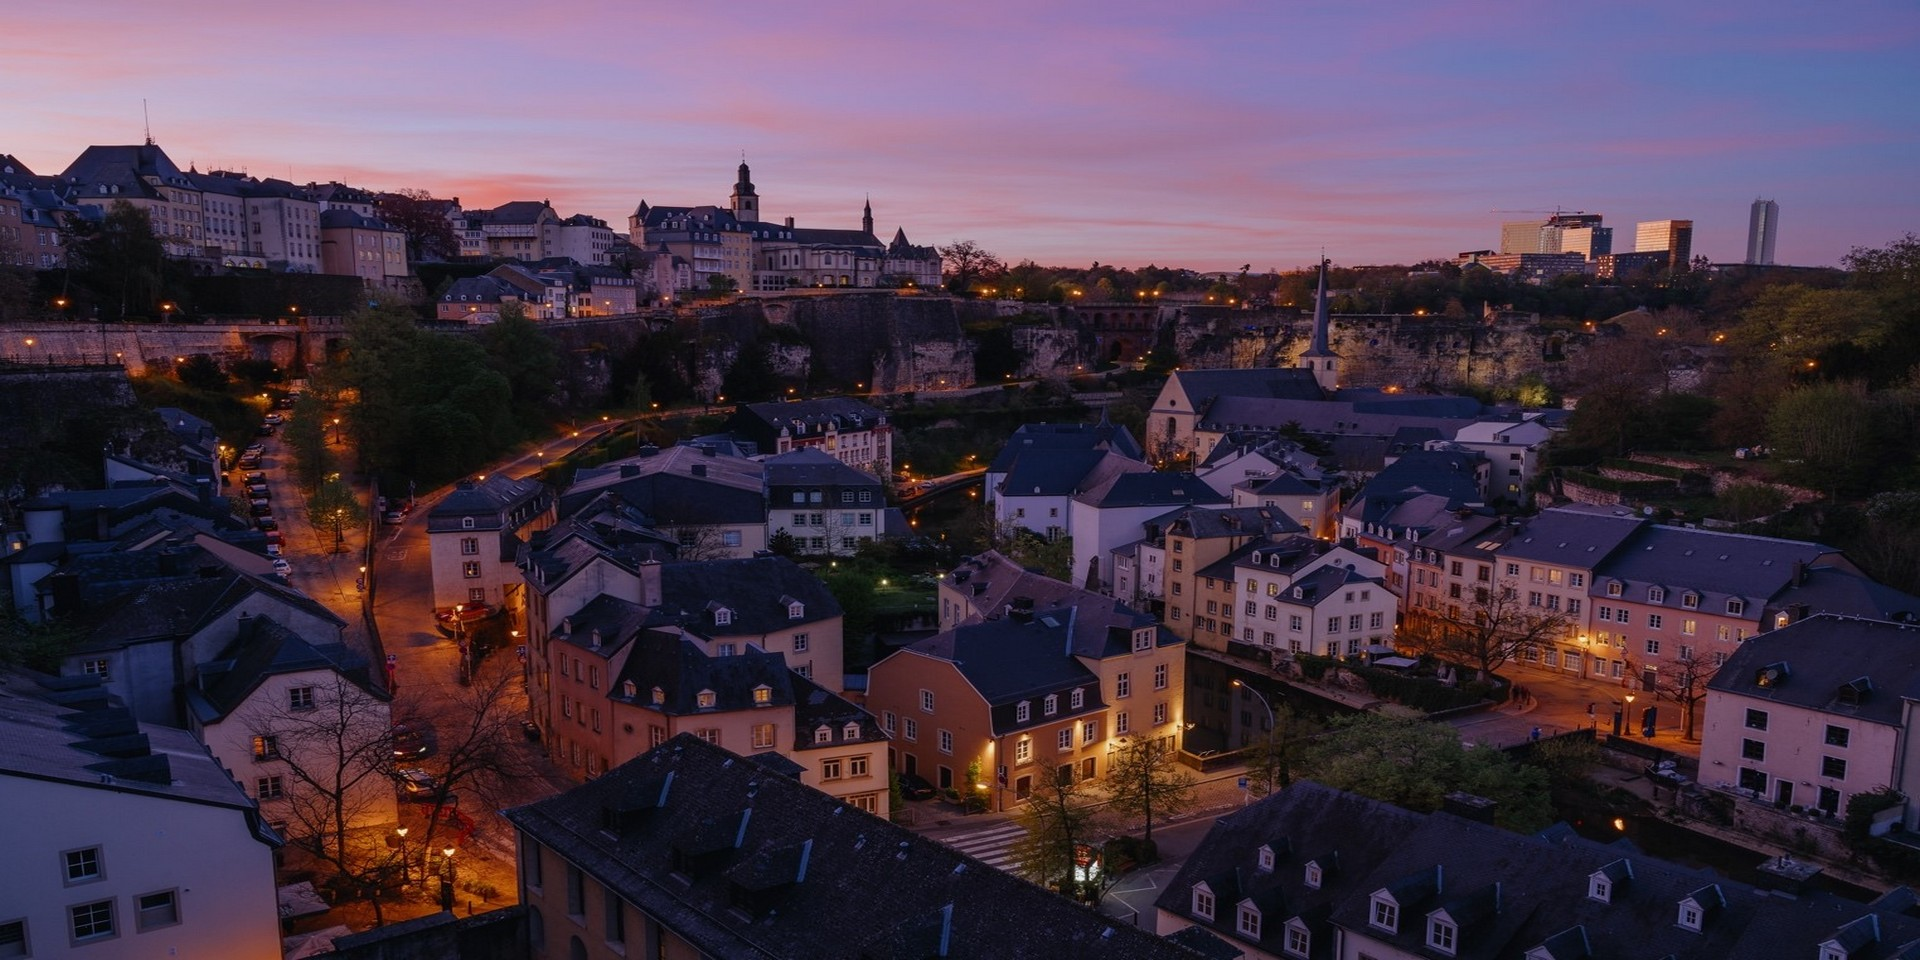 About Luxembourg